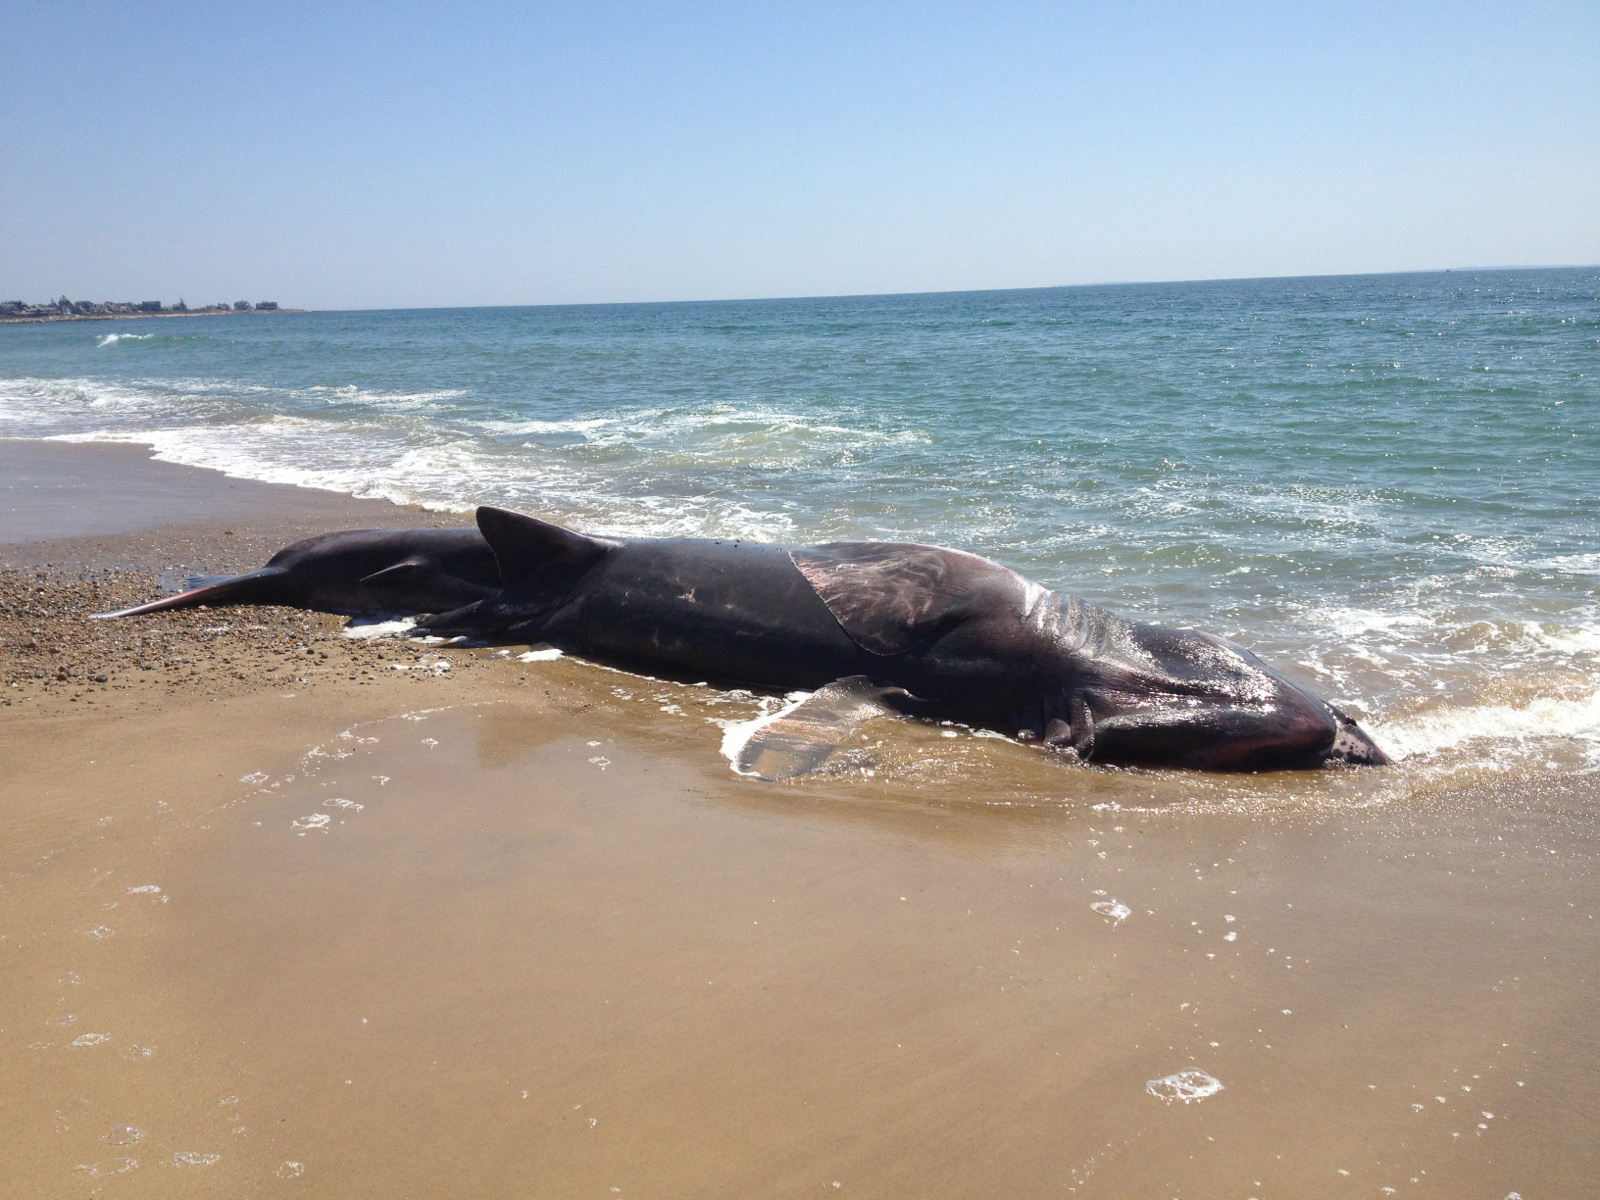 Mysterious sea creature washes ashore in St. Simons Island